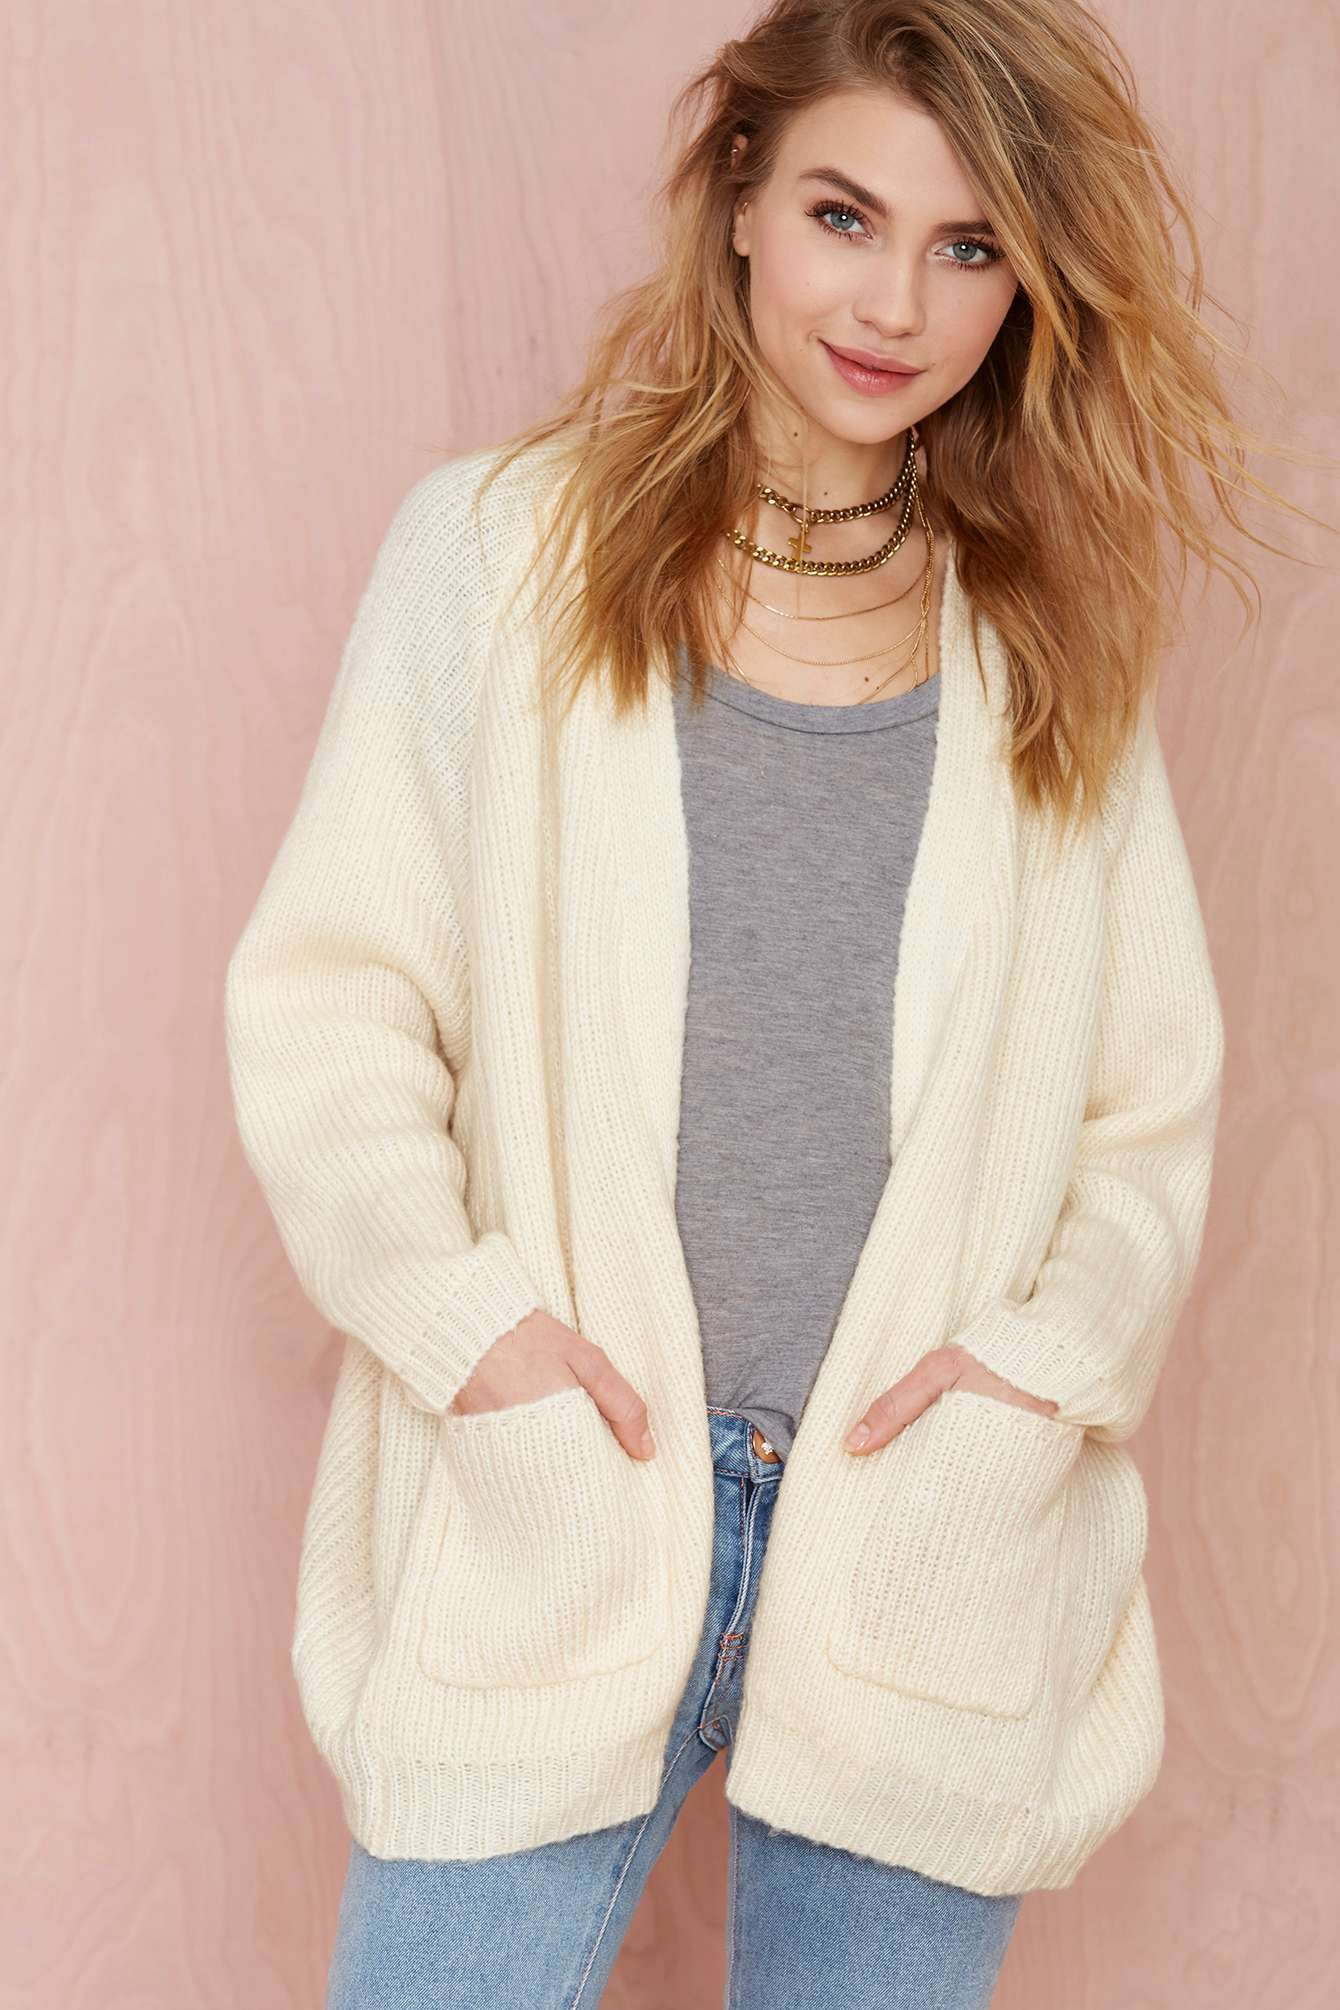 UNIF Hole Wool Cardigan - Ivory | Thanks, It's New | Pinterest ...